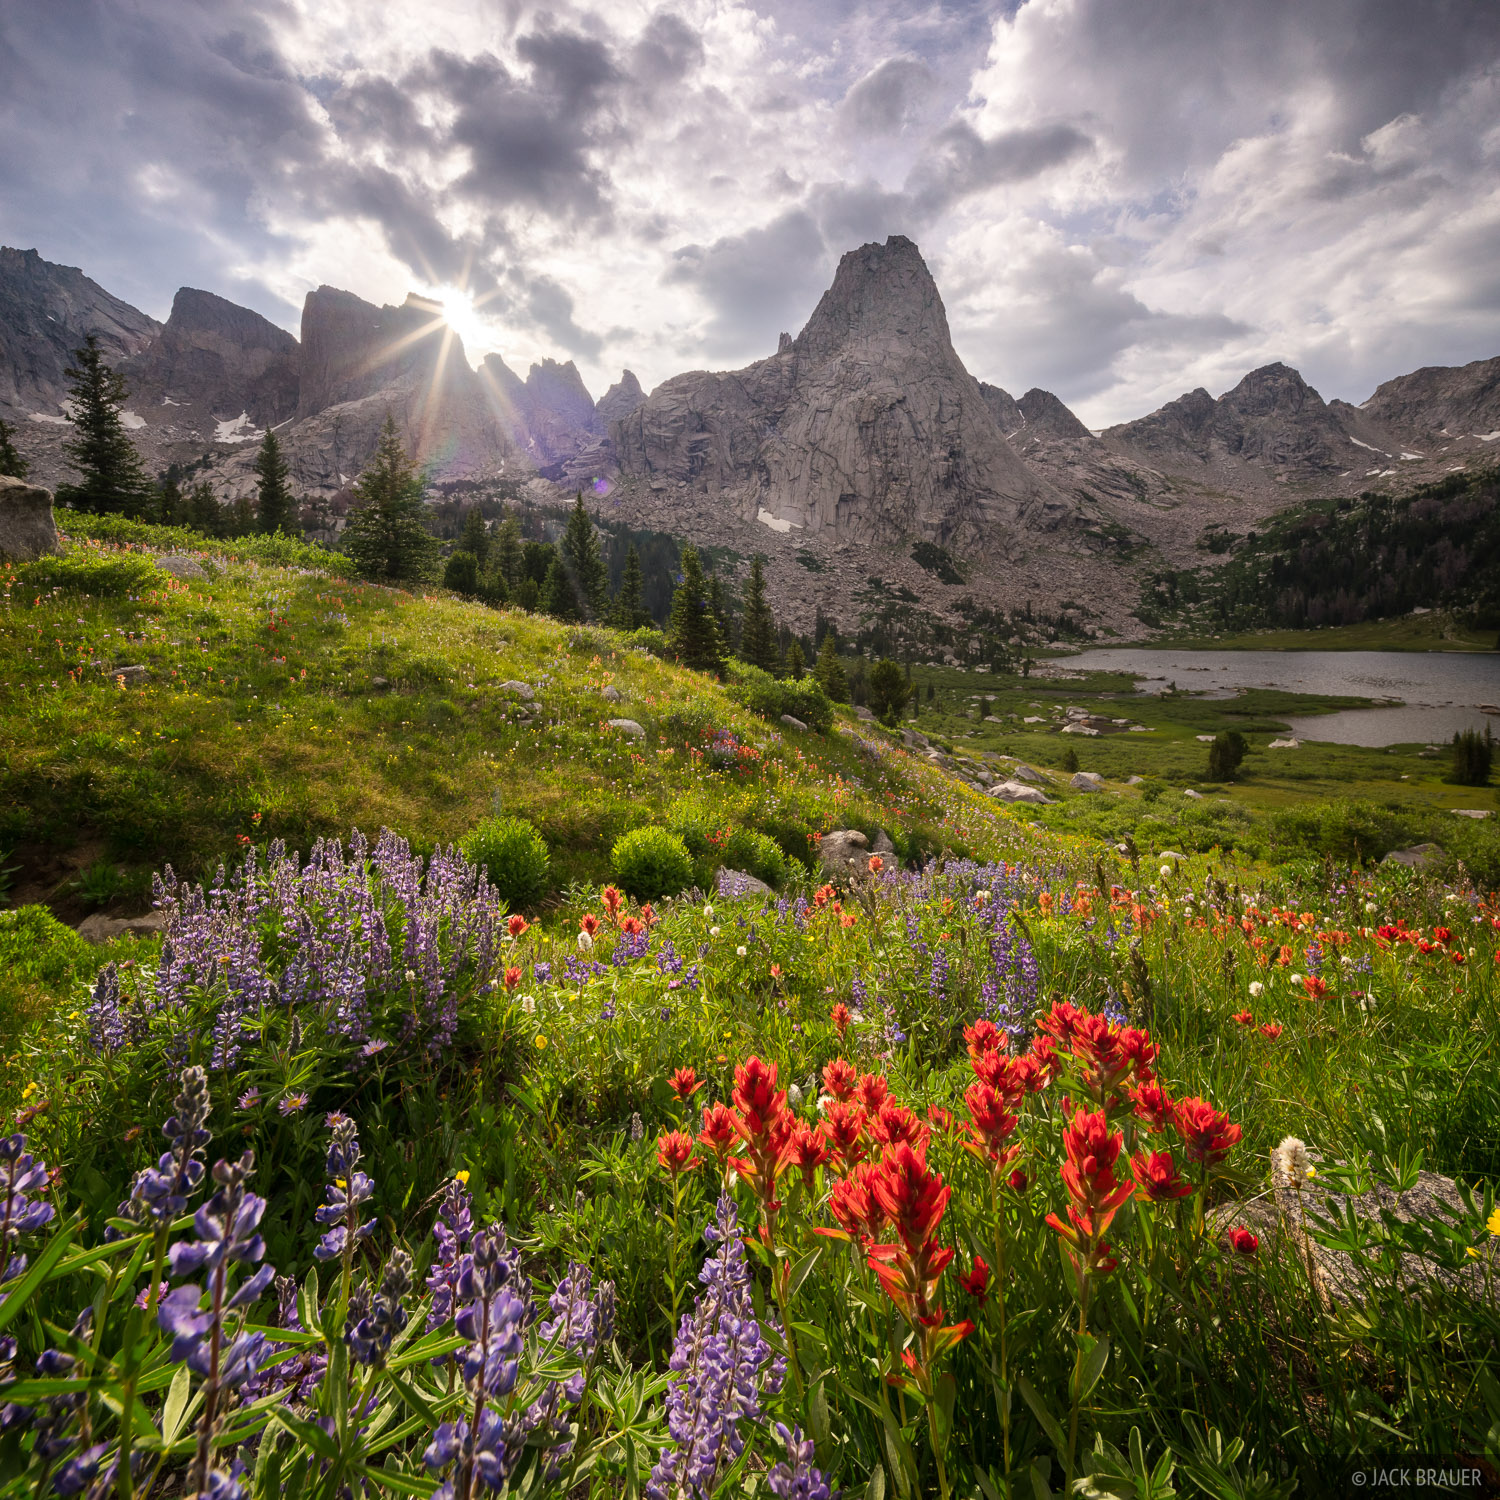 Cirque of the Towers,Pingora Peak,Wind River Range,Wyoming,wildflowers, photo